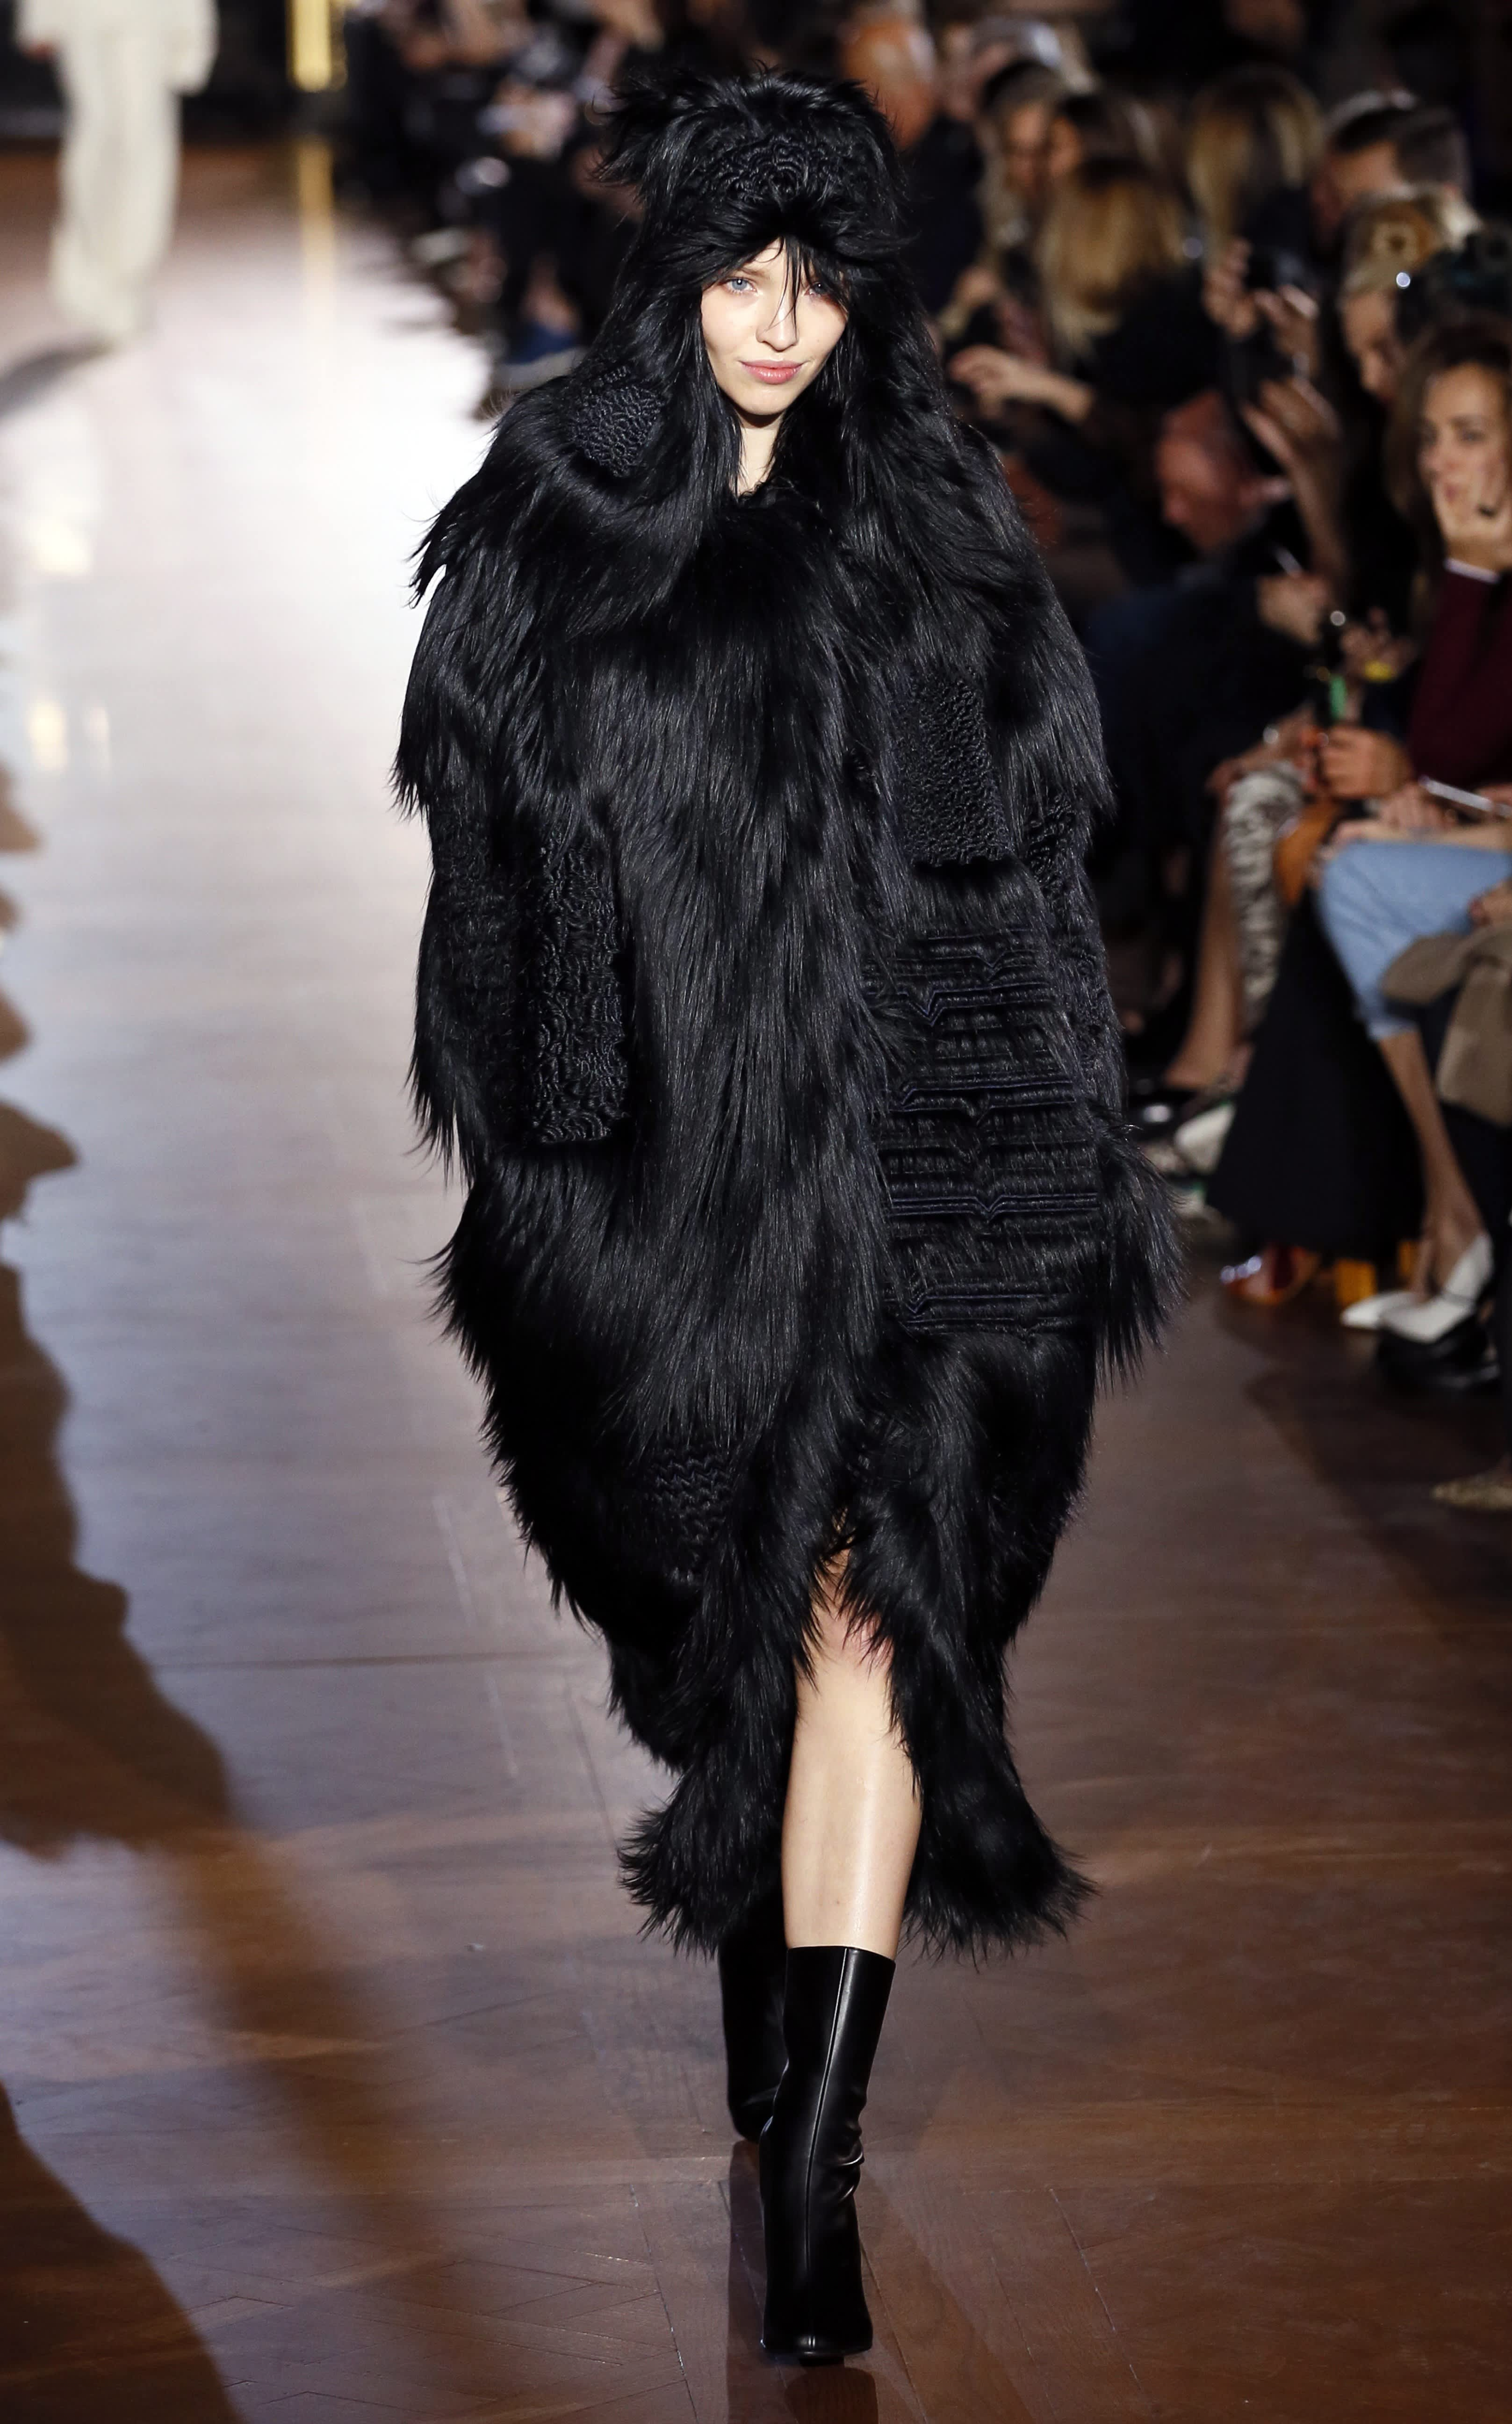 Stella McCartney: 'Fur's not sexy, not fashionable, and not cool'